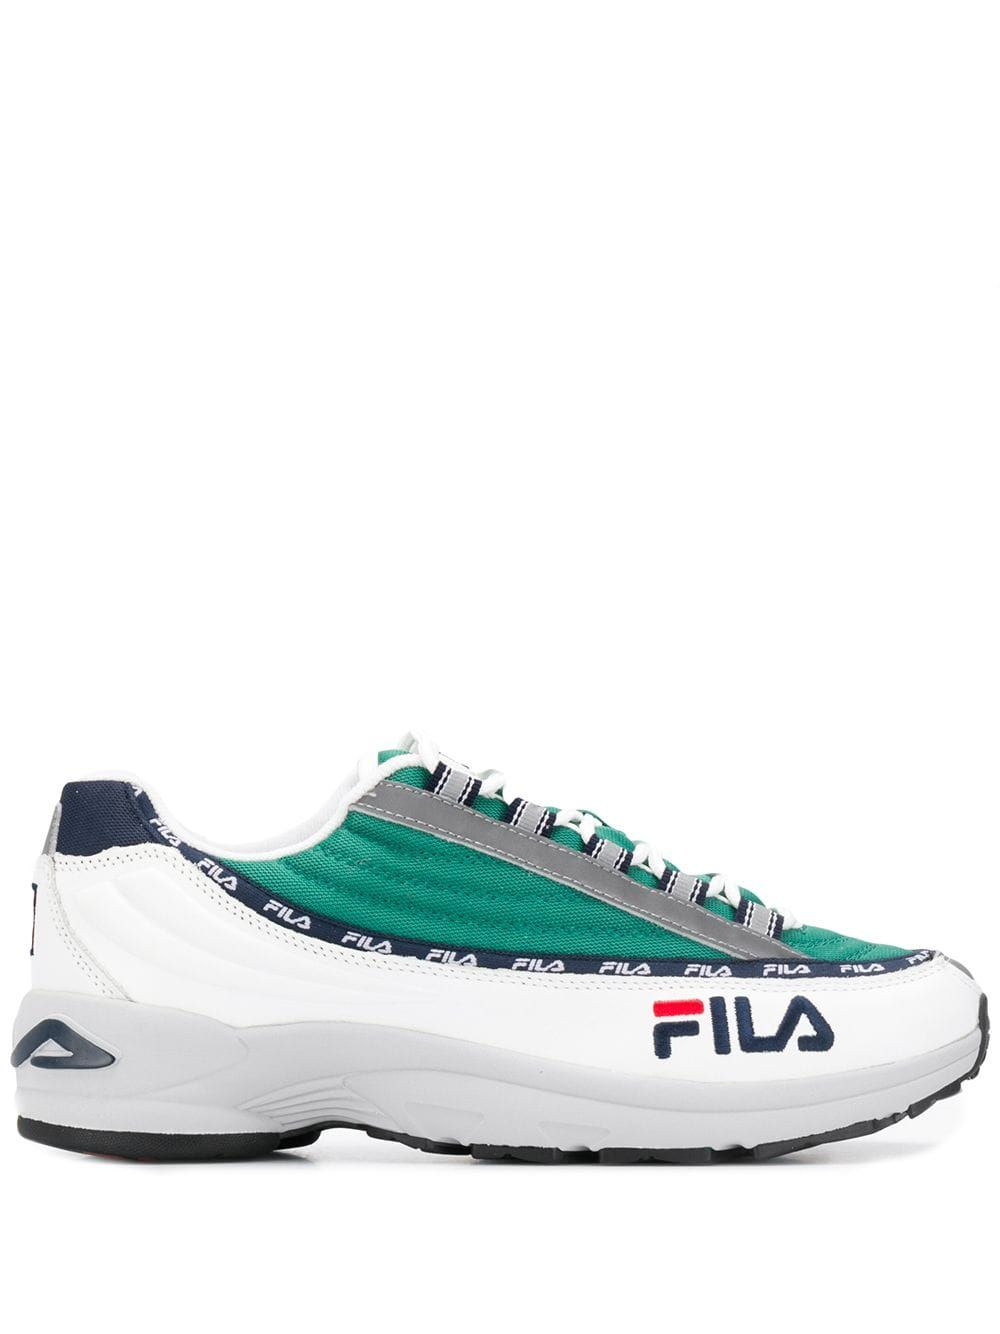 White SneakersShoes Dragster Fila 2019Products Sneakers In oedCxWrB